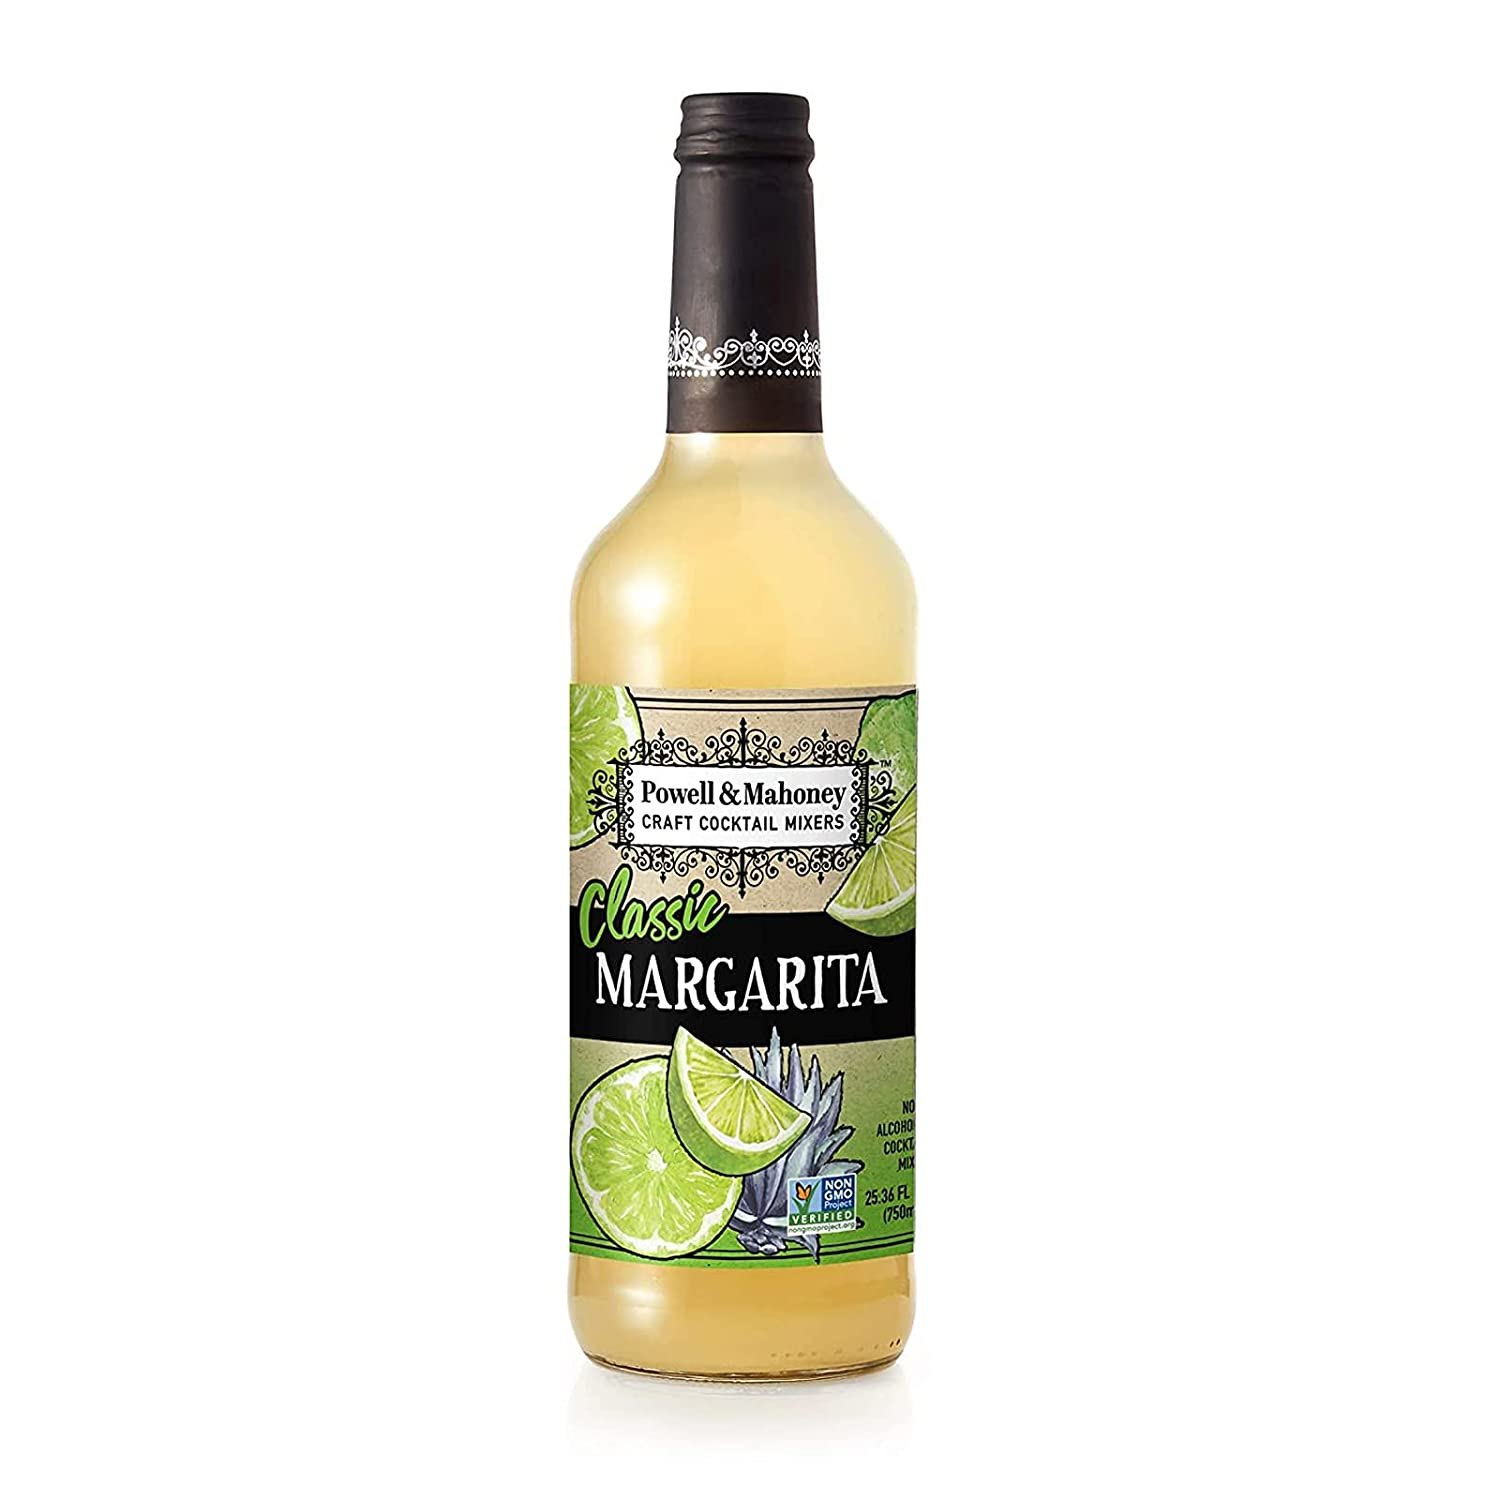 Powell & Mahoney Craft Cocktail Mixers - Classic Margarita - NA Cocktail Mix - Free from Artificial Sweeteners and Flavors - 25.36 oz - Non-GMO